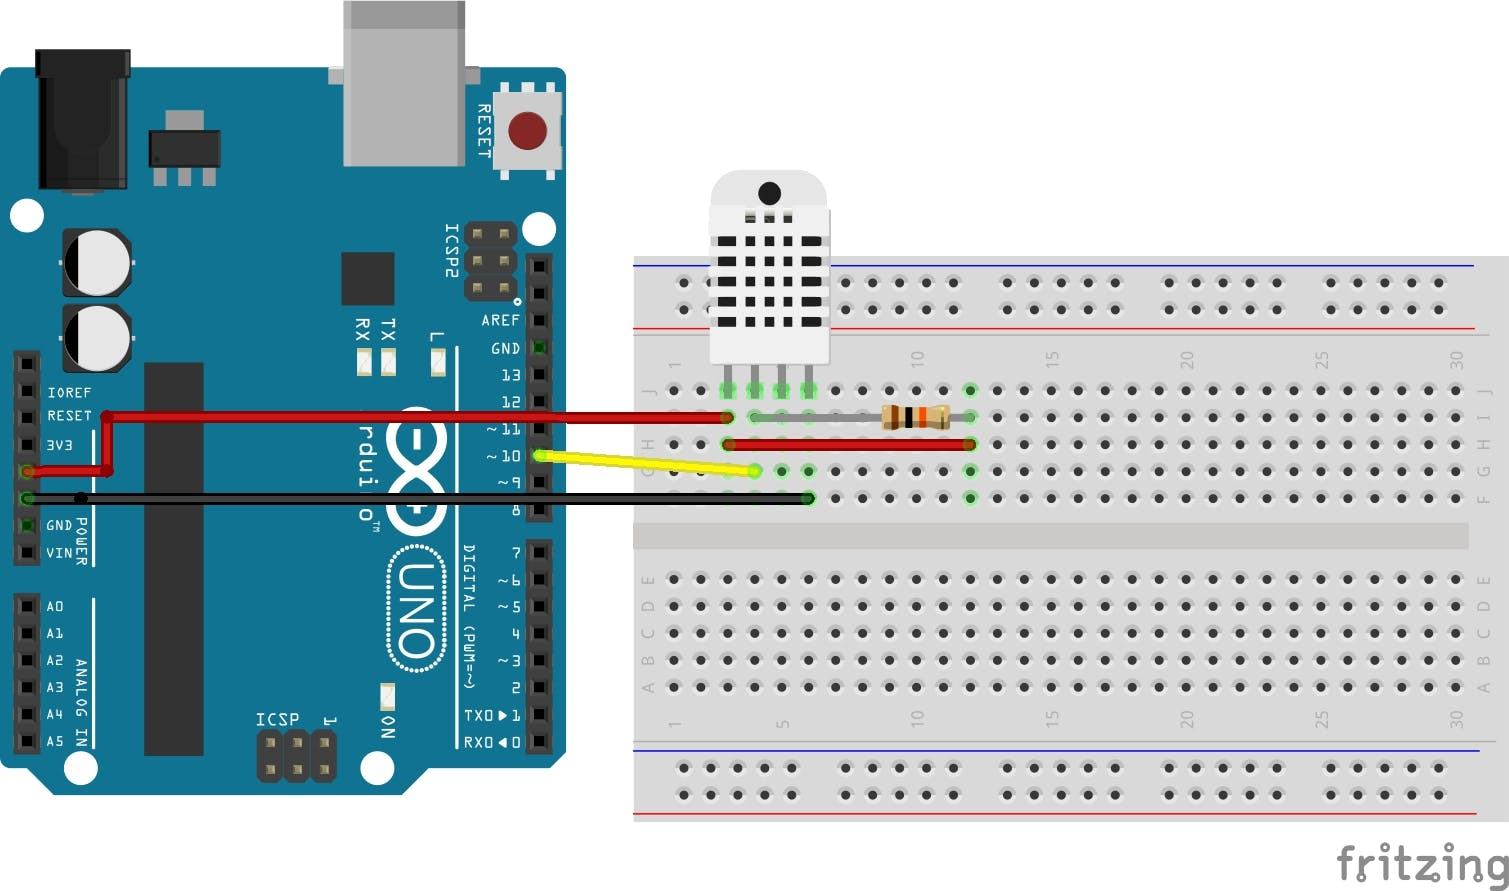 Hookup instructions for the DHT22 sensor. (From left to right) pin 1 is Vcc and should be connected to 5V. Pin is 2 is data and should be connected to 5V through a 10k pull-up resistor. Then connect Pin 2 to Digital Pin 10 on the Arduino. Pin 3 of the DHT22 sensor is unused, leave it floating. Finally, connect pin 4 to ground.